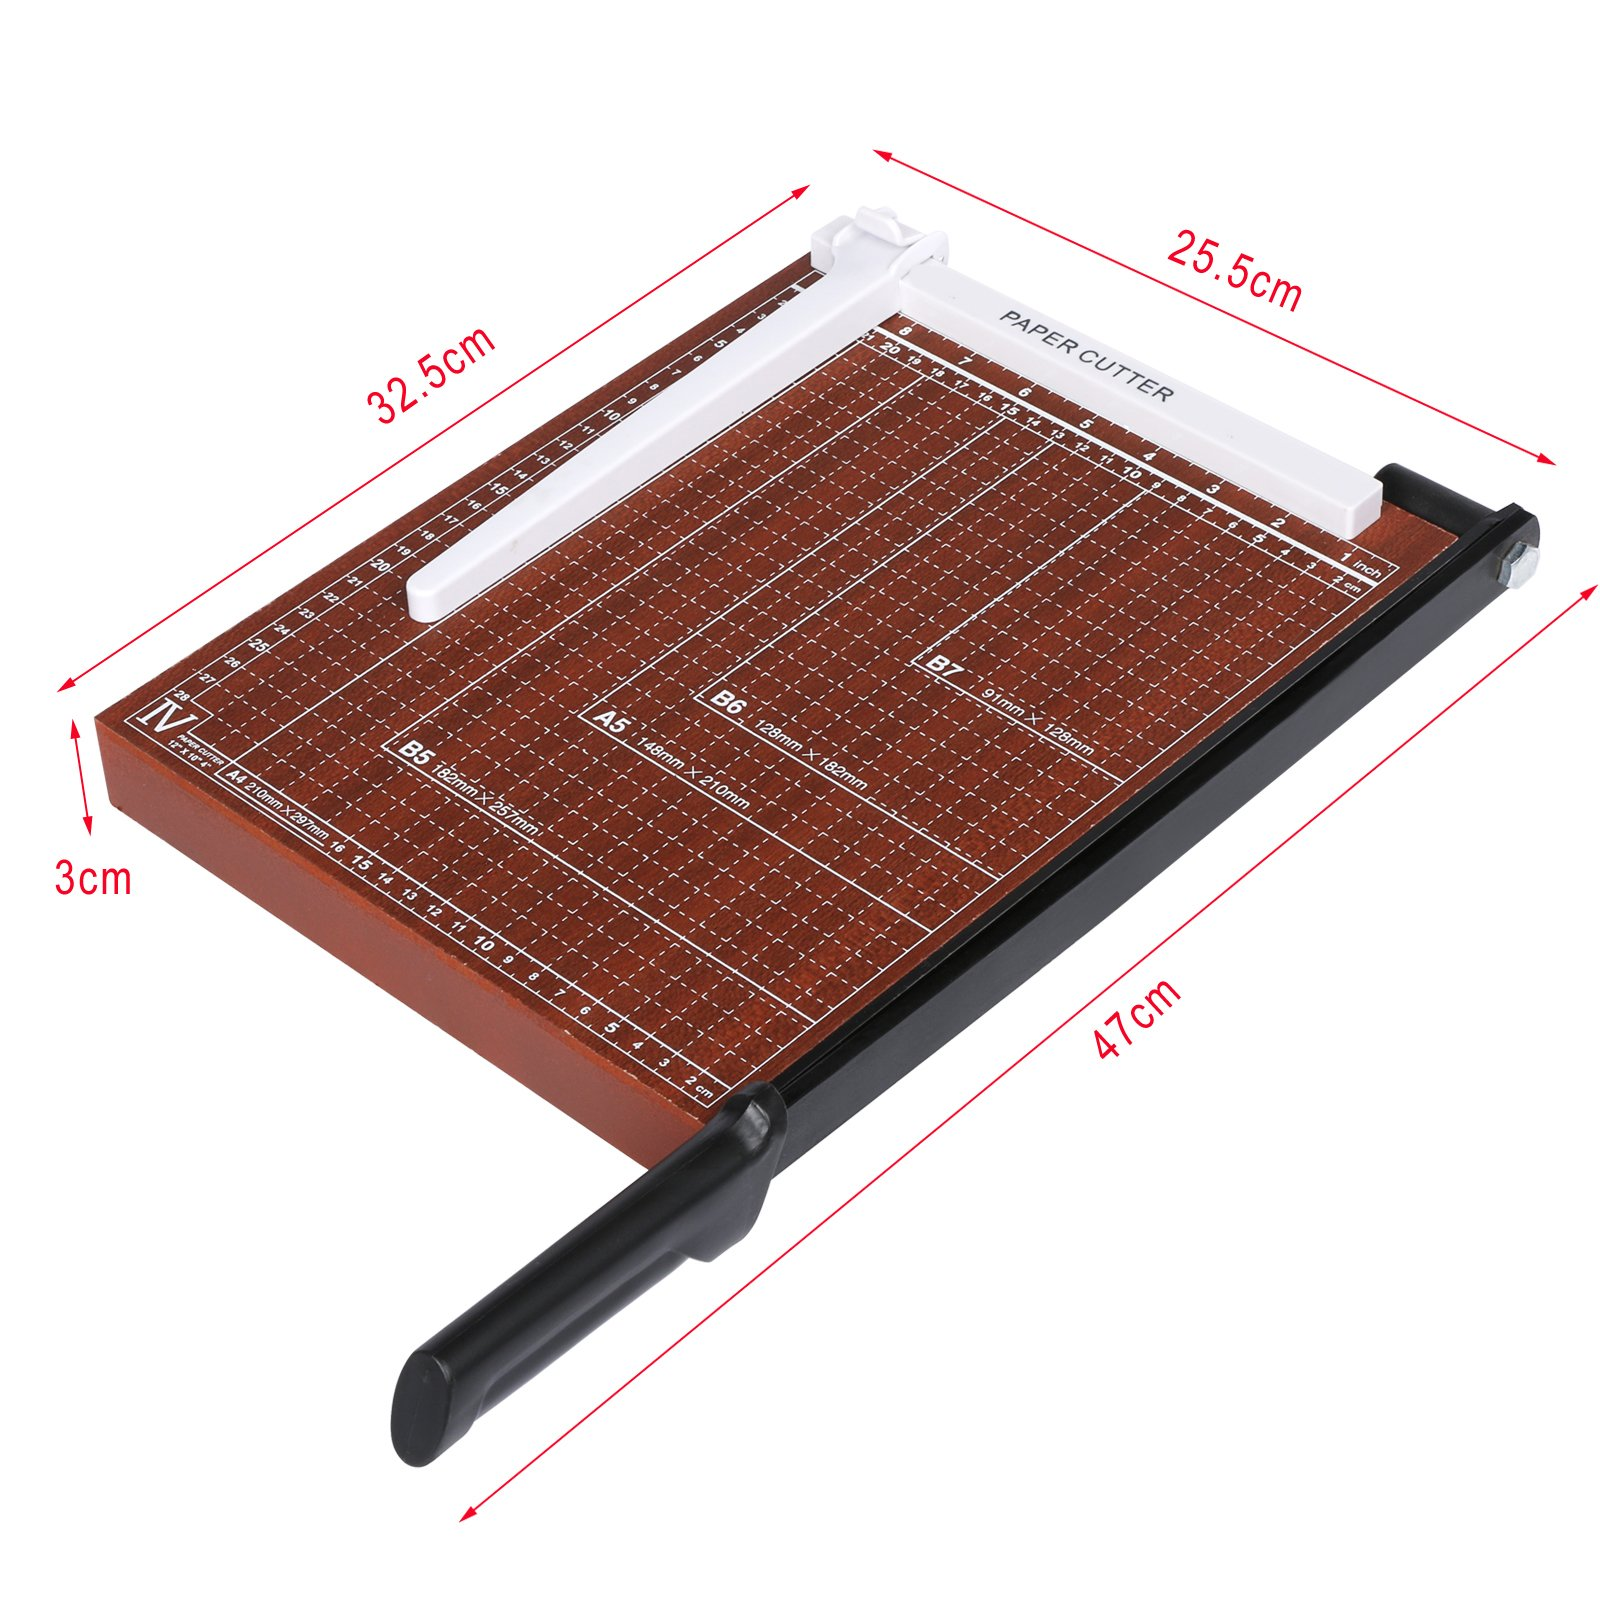 Heavy Duty A4, B5, A5, B6, B7 Guillotine Paper Cutter Home Office Professional Guillotine Trimmer Photo Paper Cutting Machine (Red-12.7 x 9.9 x 1.2inch) by Elopea (Image #3)